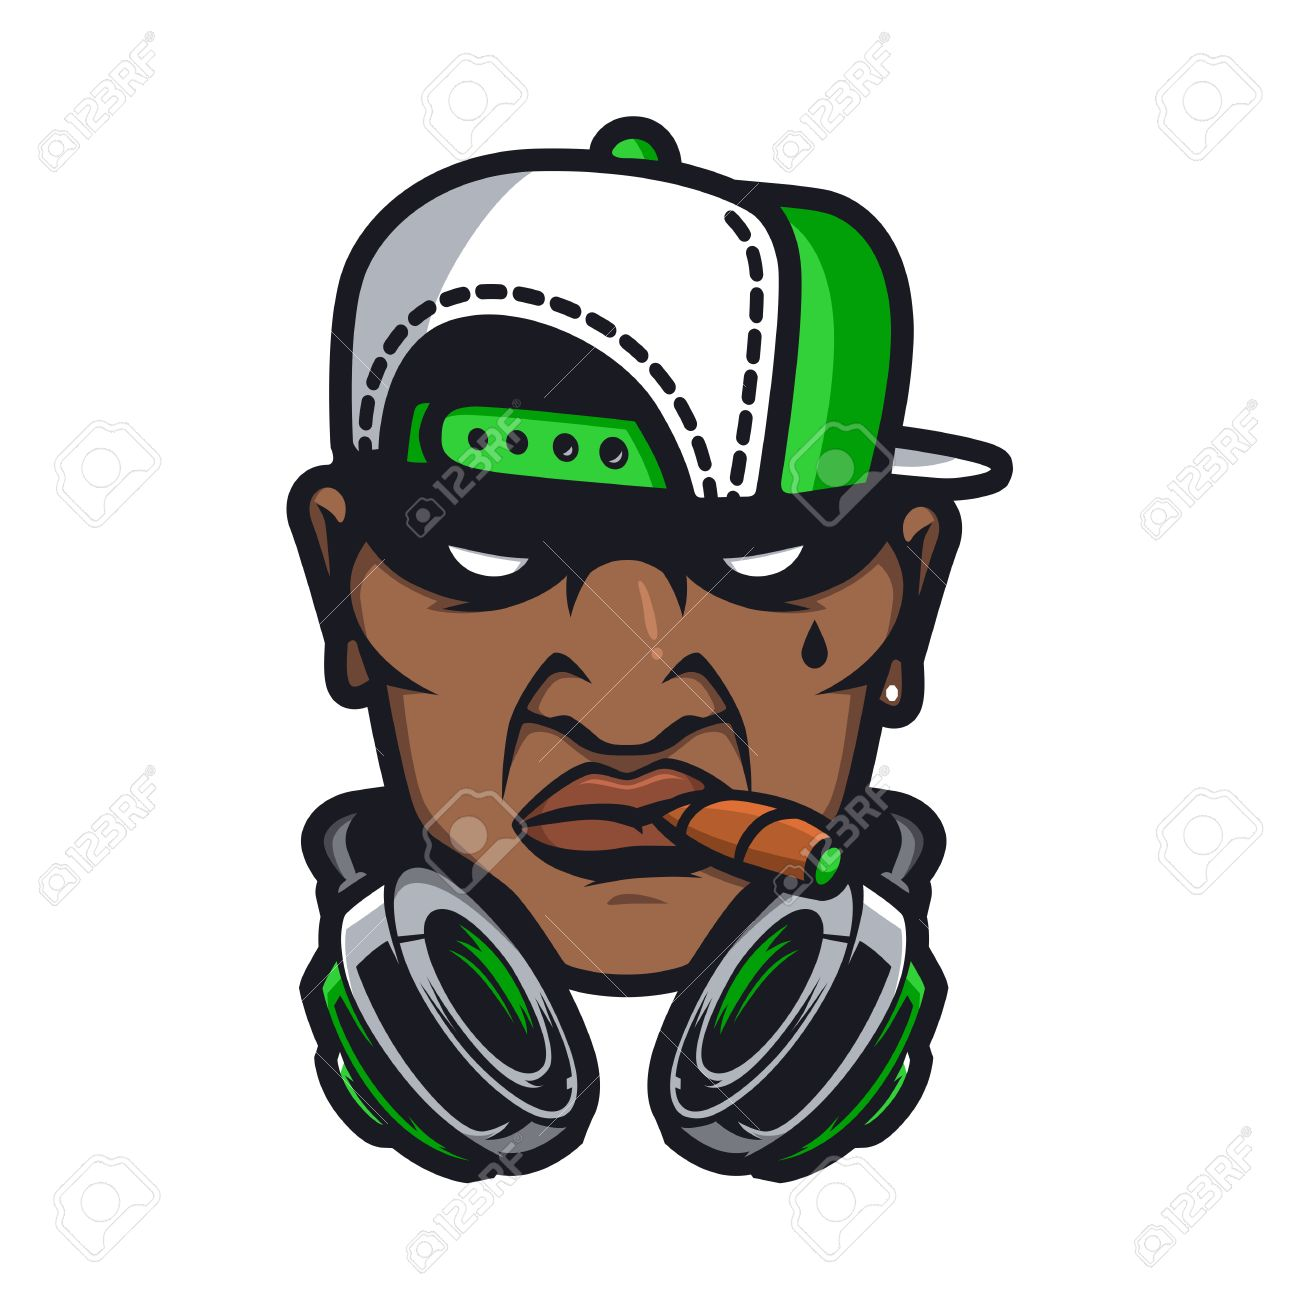 Urban HipHop smoking character in cartoon vector style - 60768984